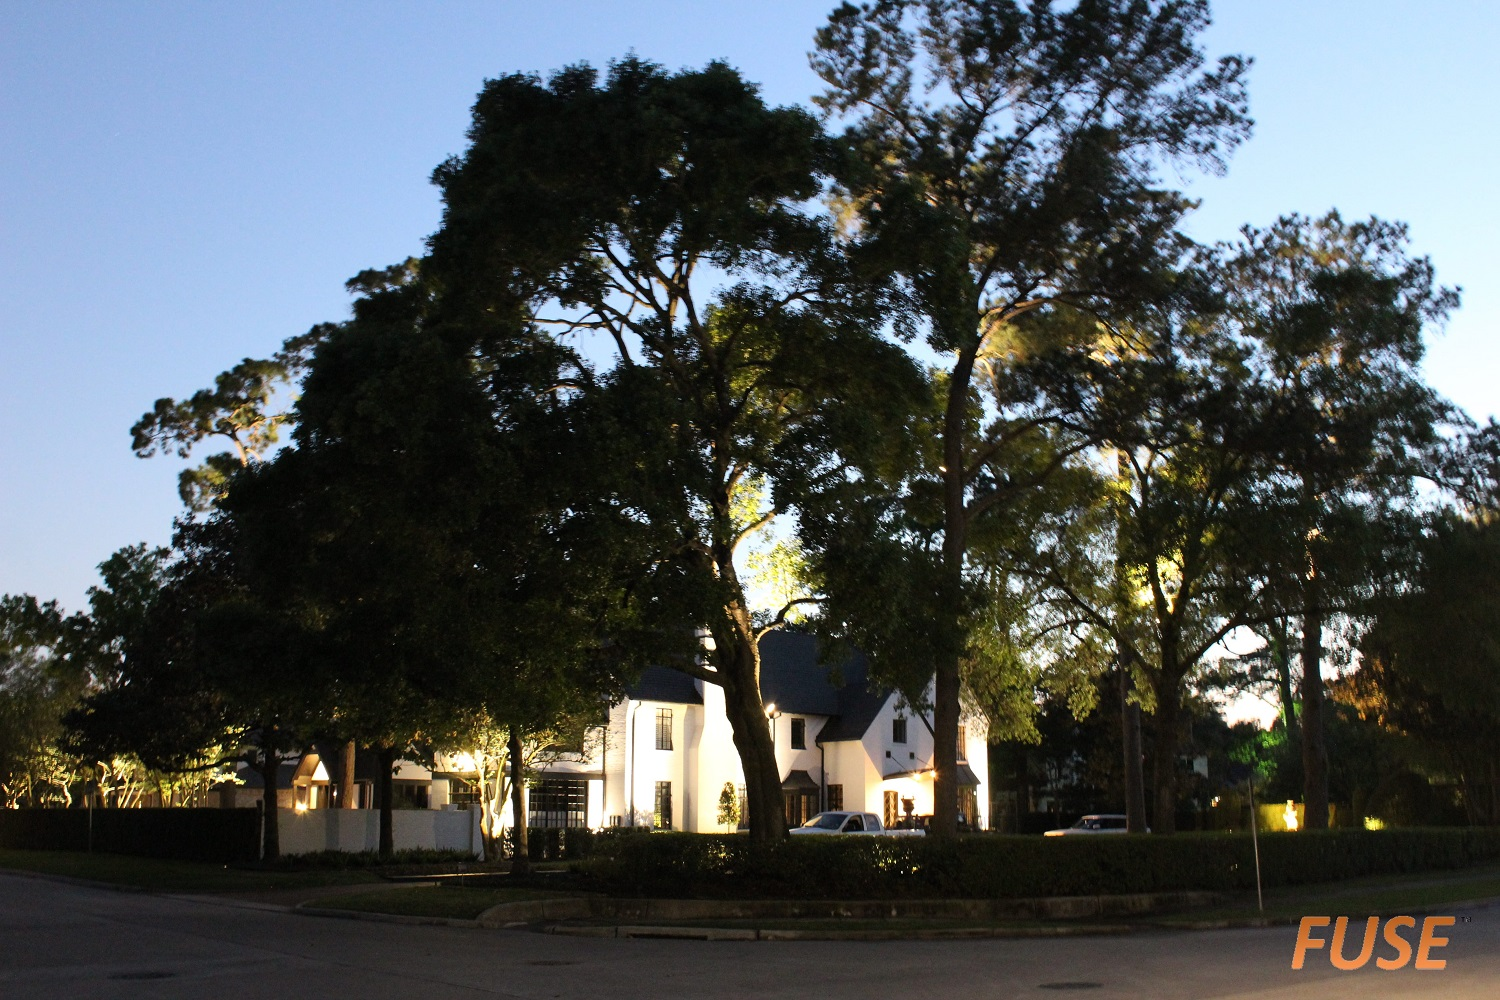 FUSE Lighting - Landscape Lighting in Houston, Texas